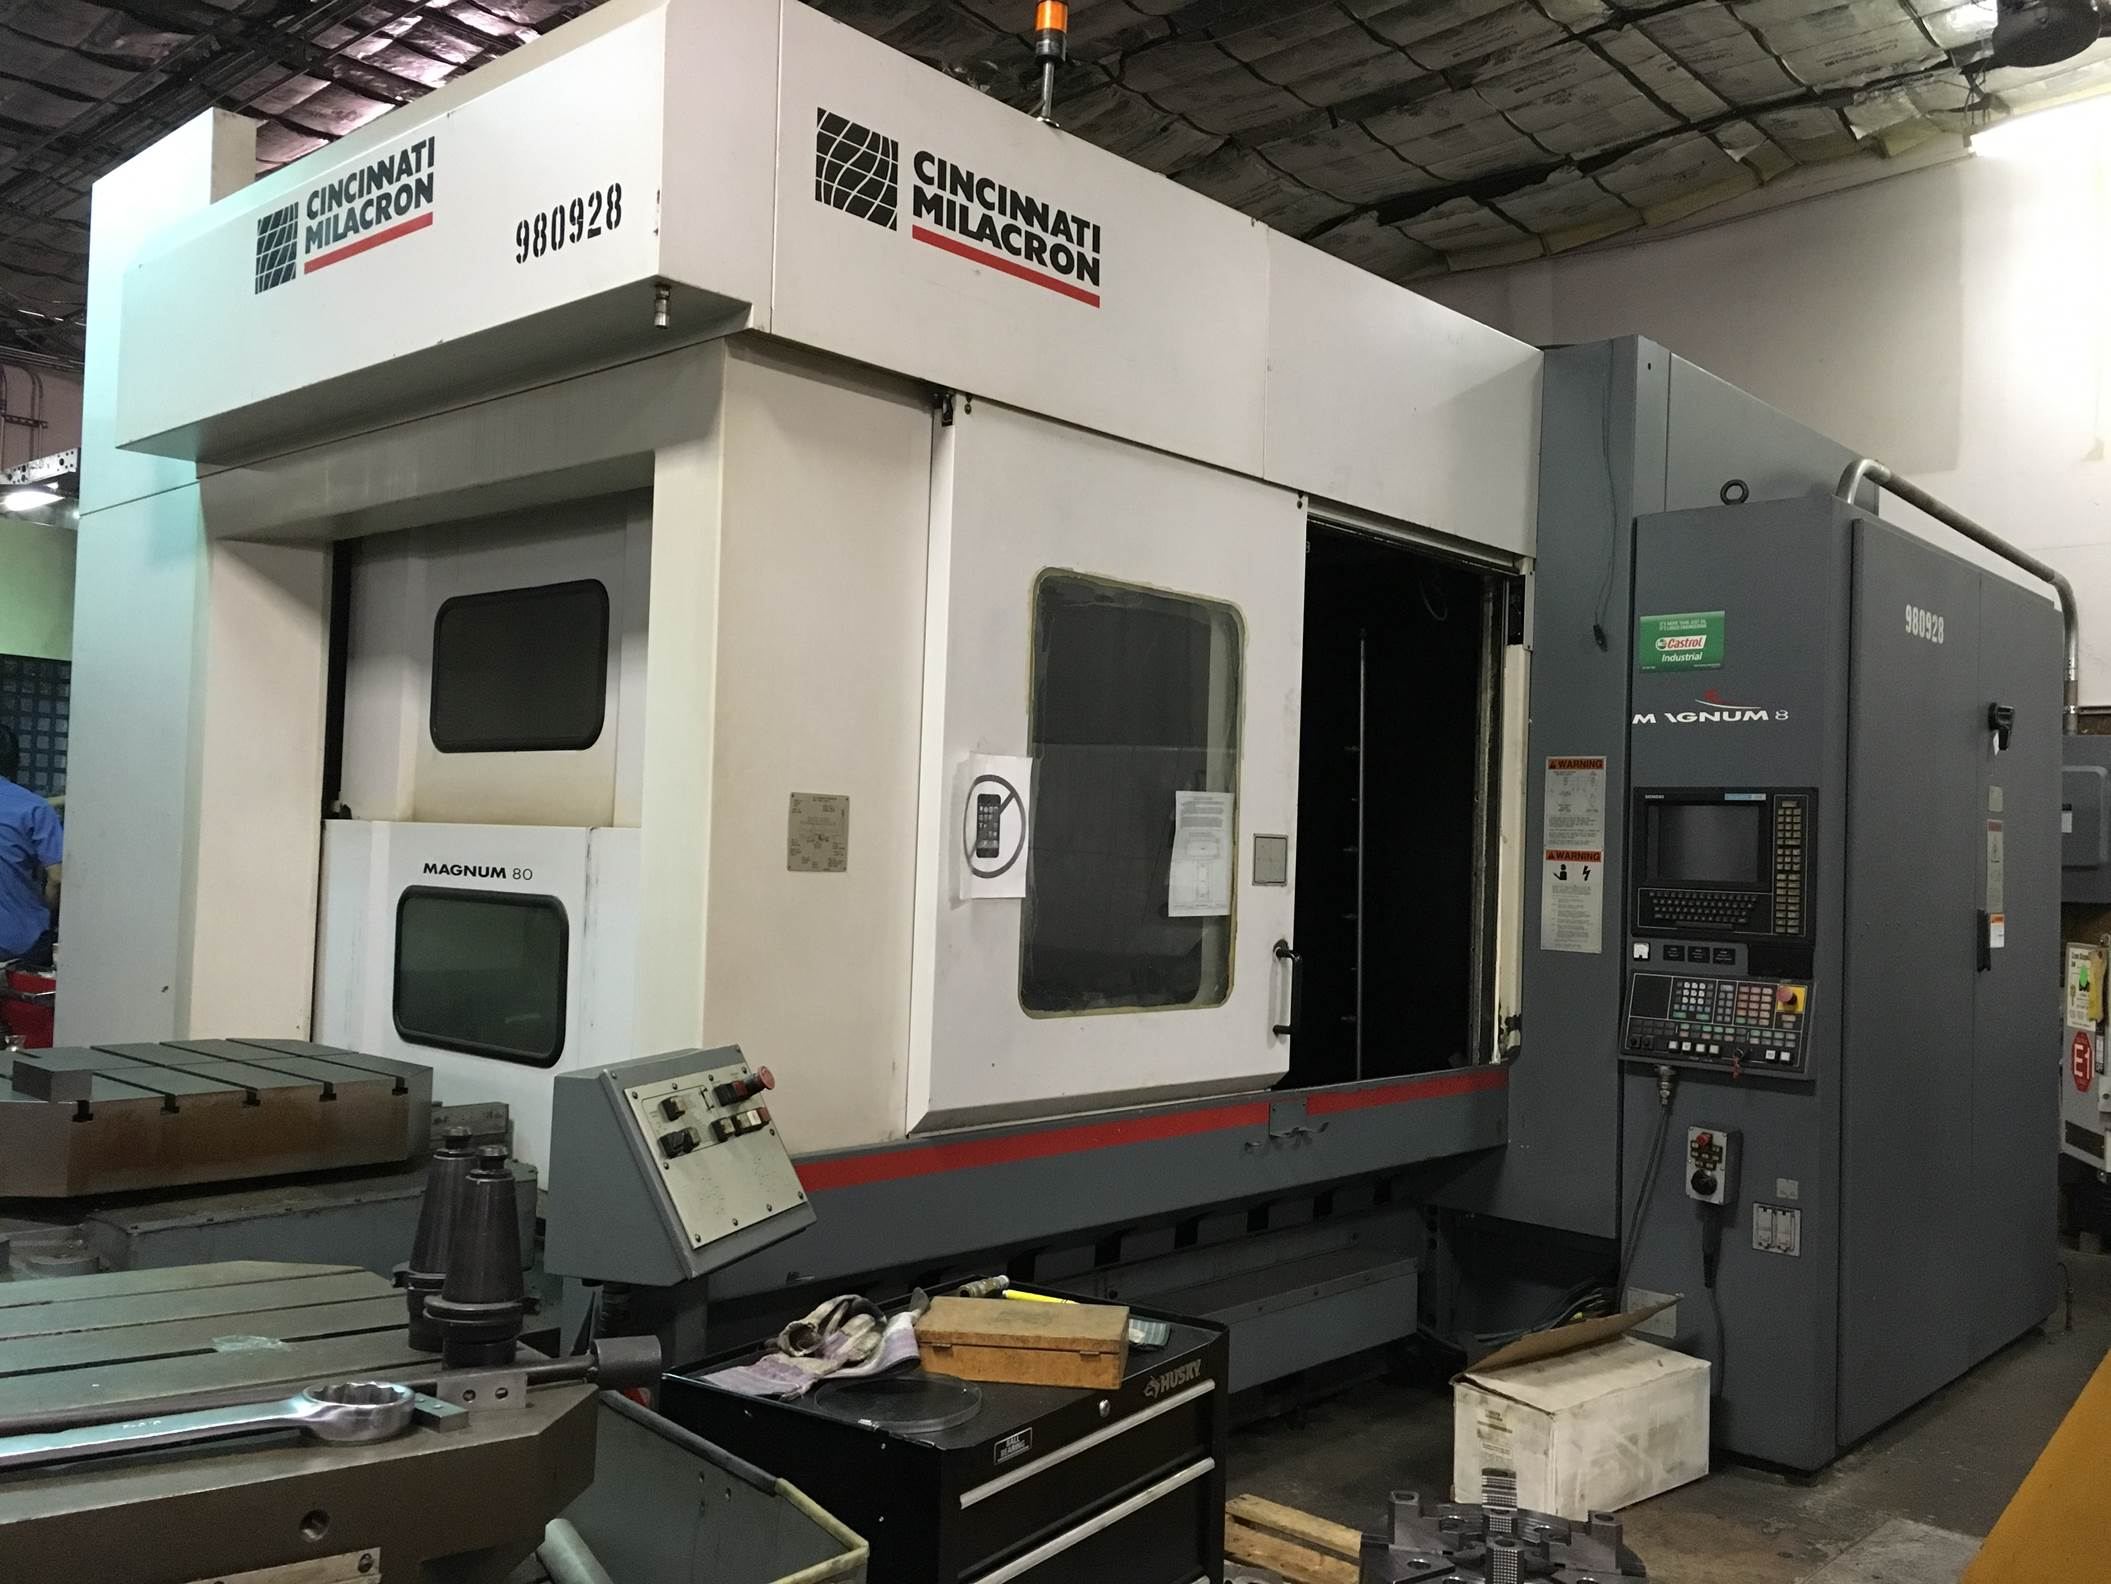 CINCINNATI MAGNUM 800 HORIZONTAL MACHINING CENTER